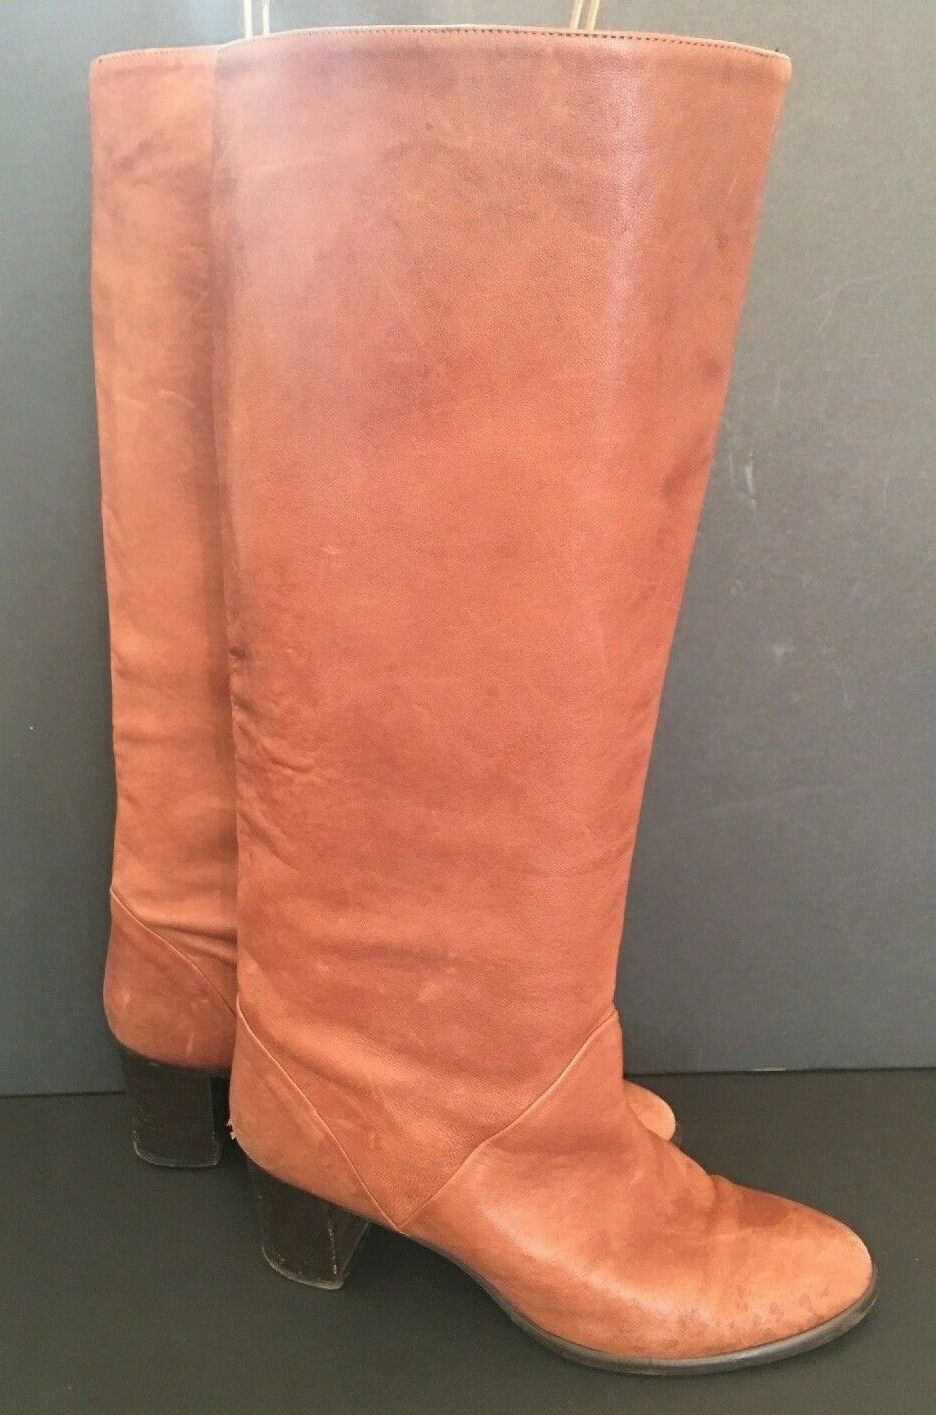 9M J.Crew Sutton Tall Leather Midheel Boots Rough Condition Item 28672